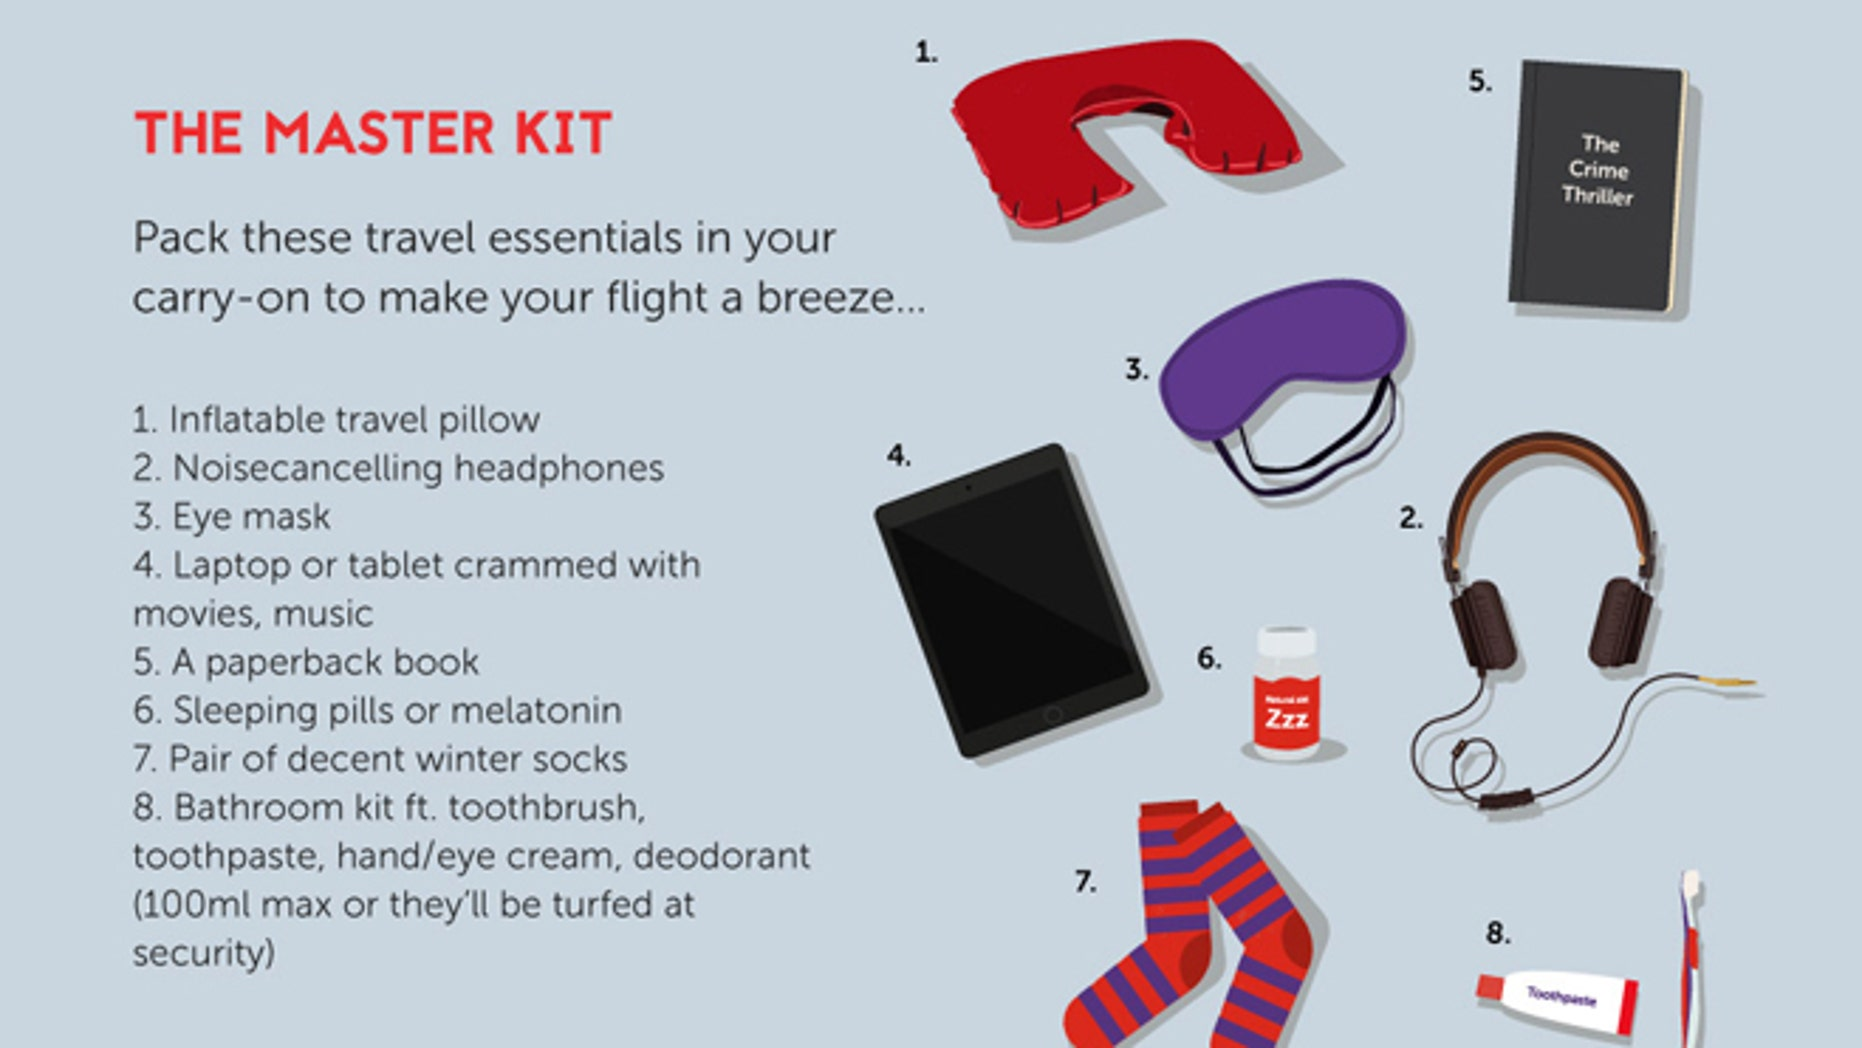 Pack these essential items for a restful long-haul flight.